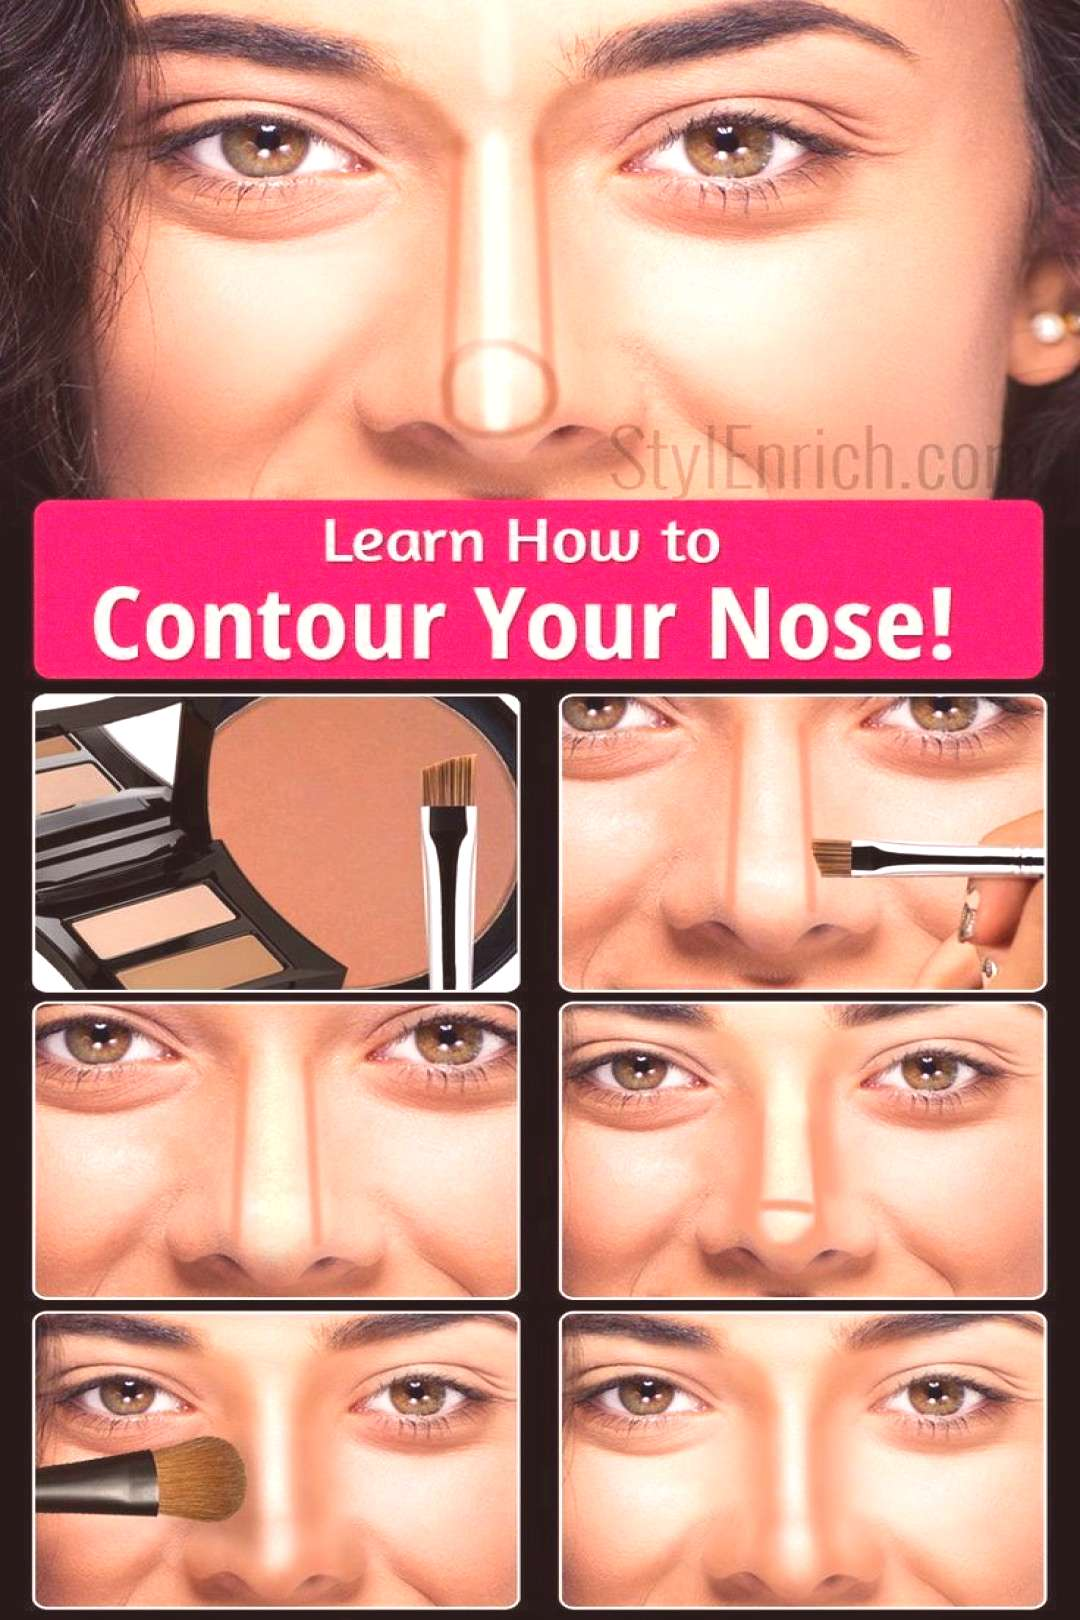 Learn How To Contour Your Nose - Makeup Secrets - Learn How To ...  Learn How To Contour Your Nose